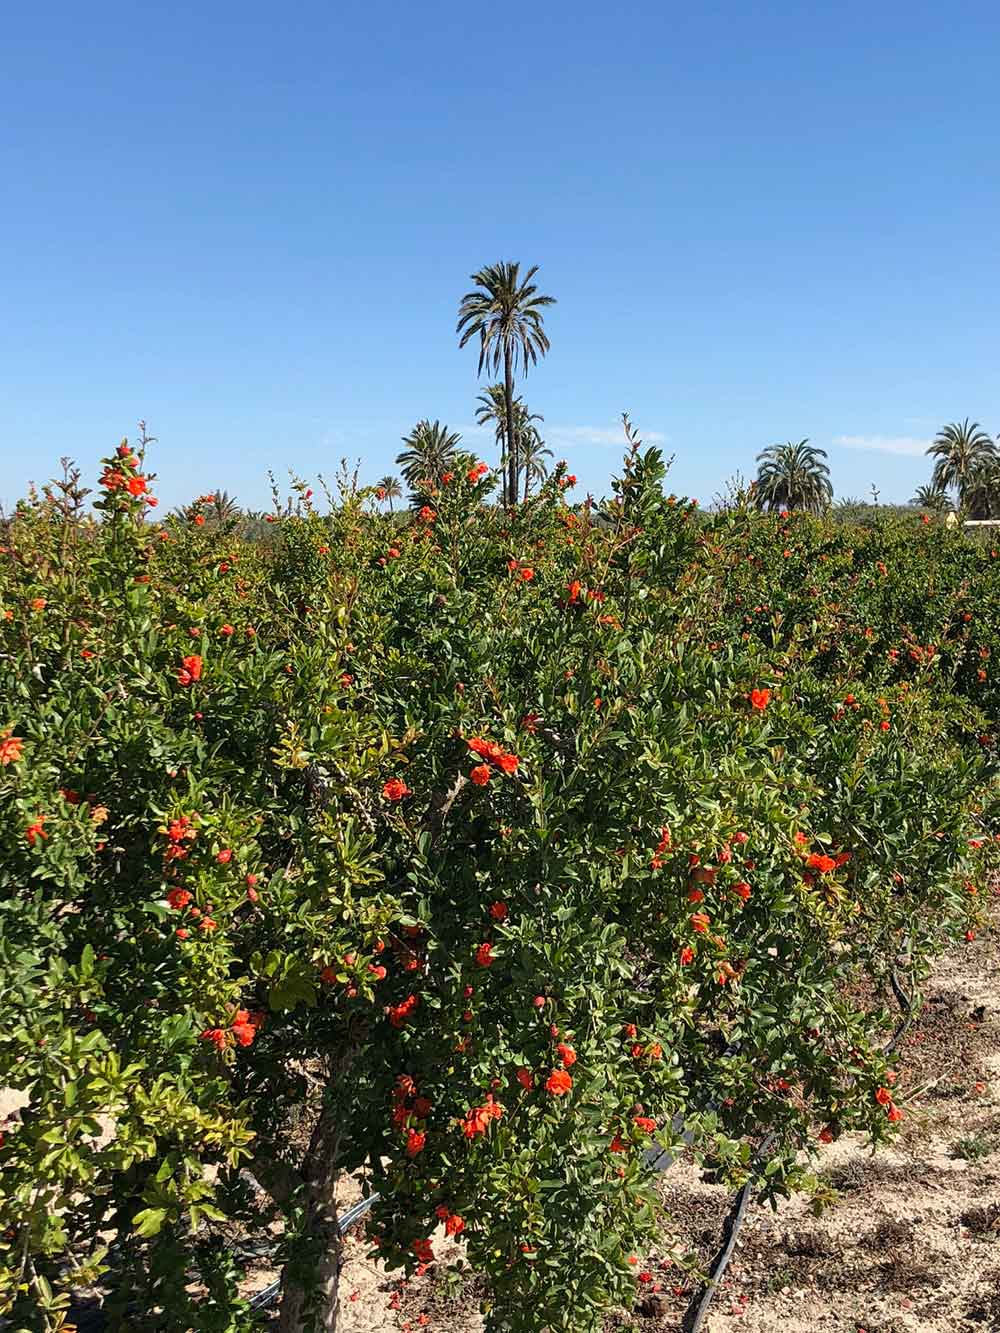 We dropped Staffie Maxie off for a short stay at Amber Lodge Kennelsnear Alicante. The area is well known for its nature park, and for its pomegranate orchards which are in full bloom just now.